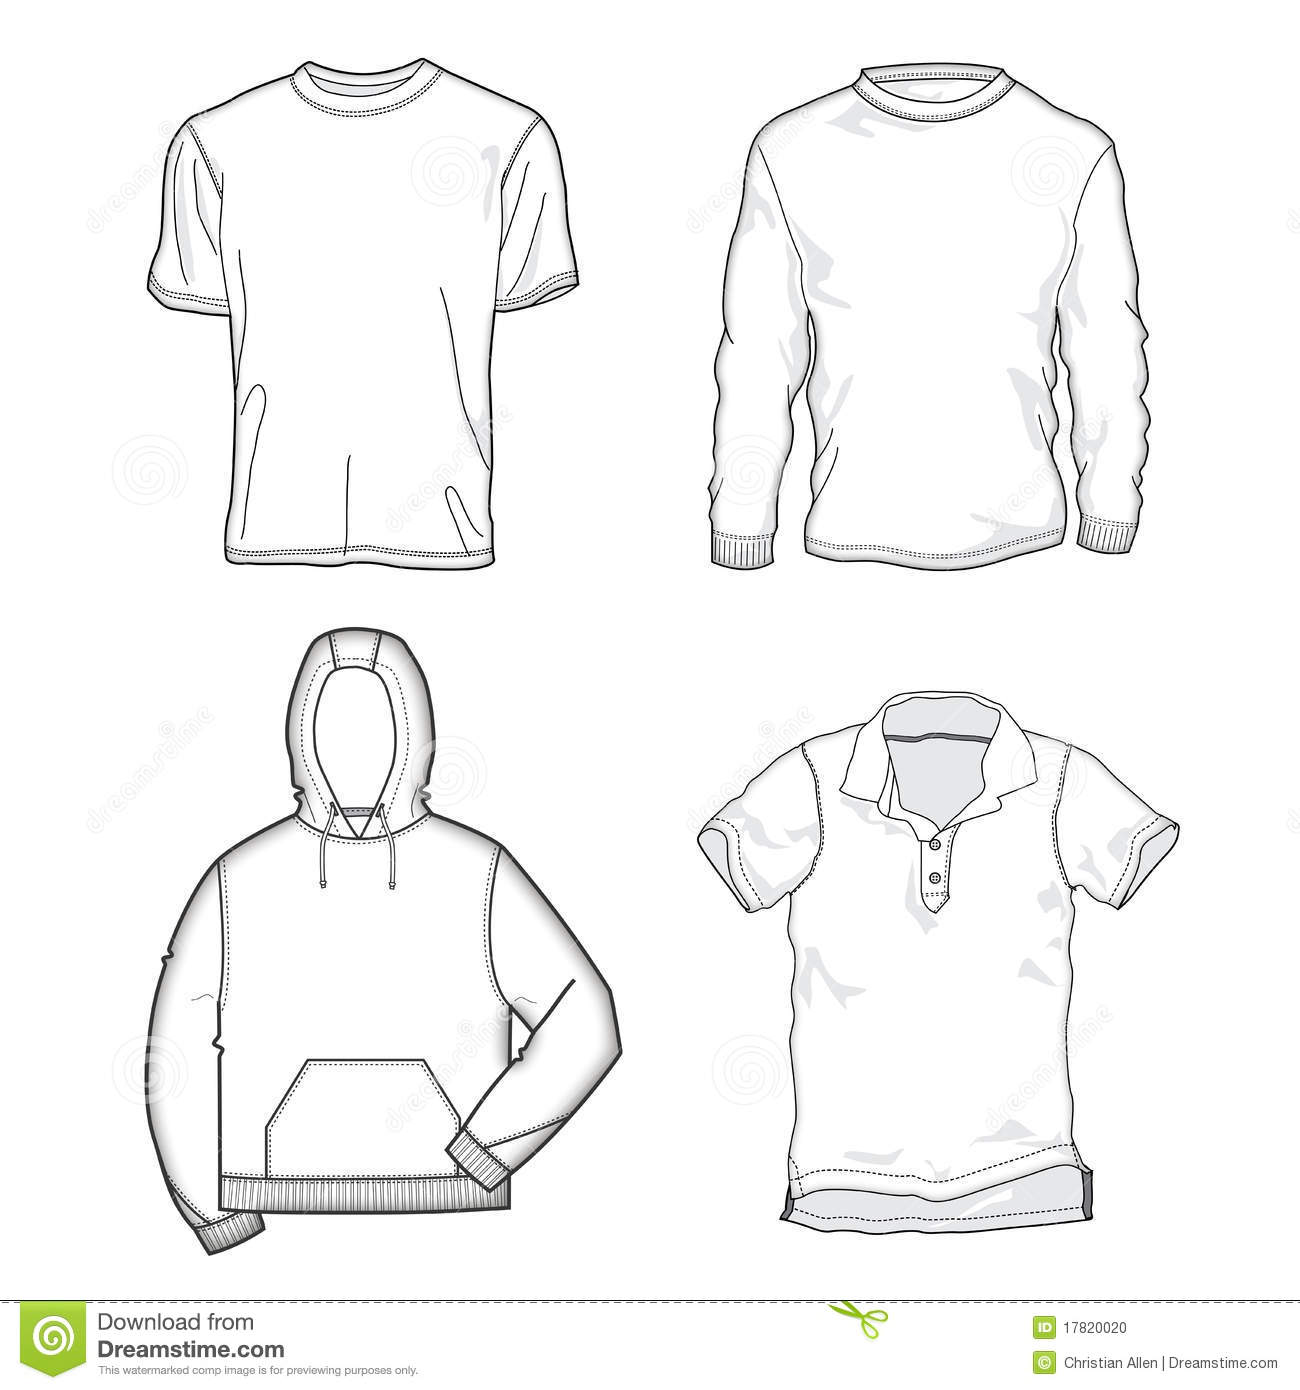 Shirt Templates Stock Photo - Image: 17820020